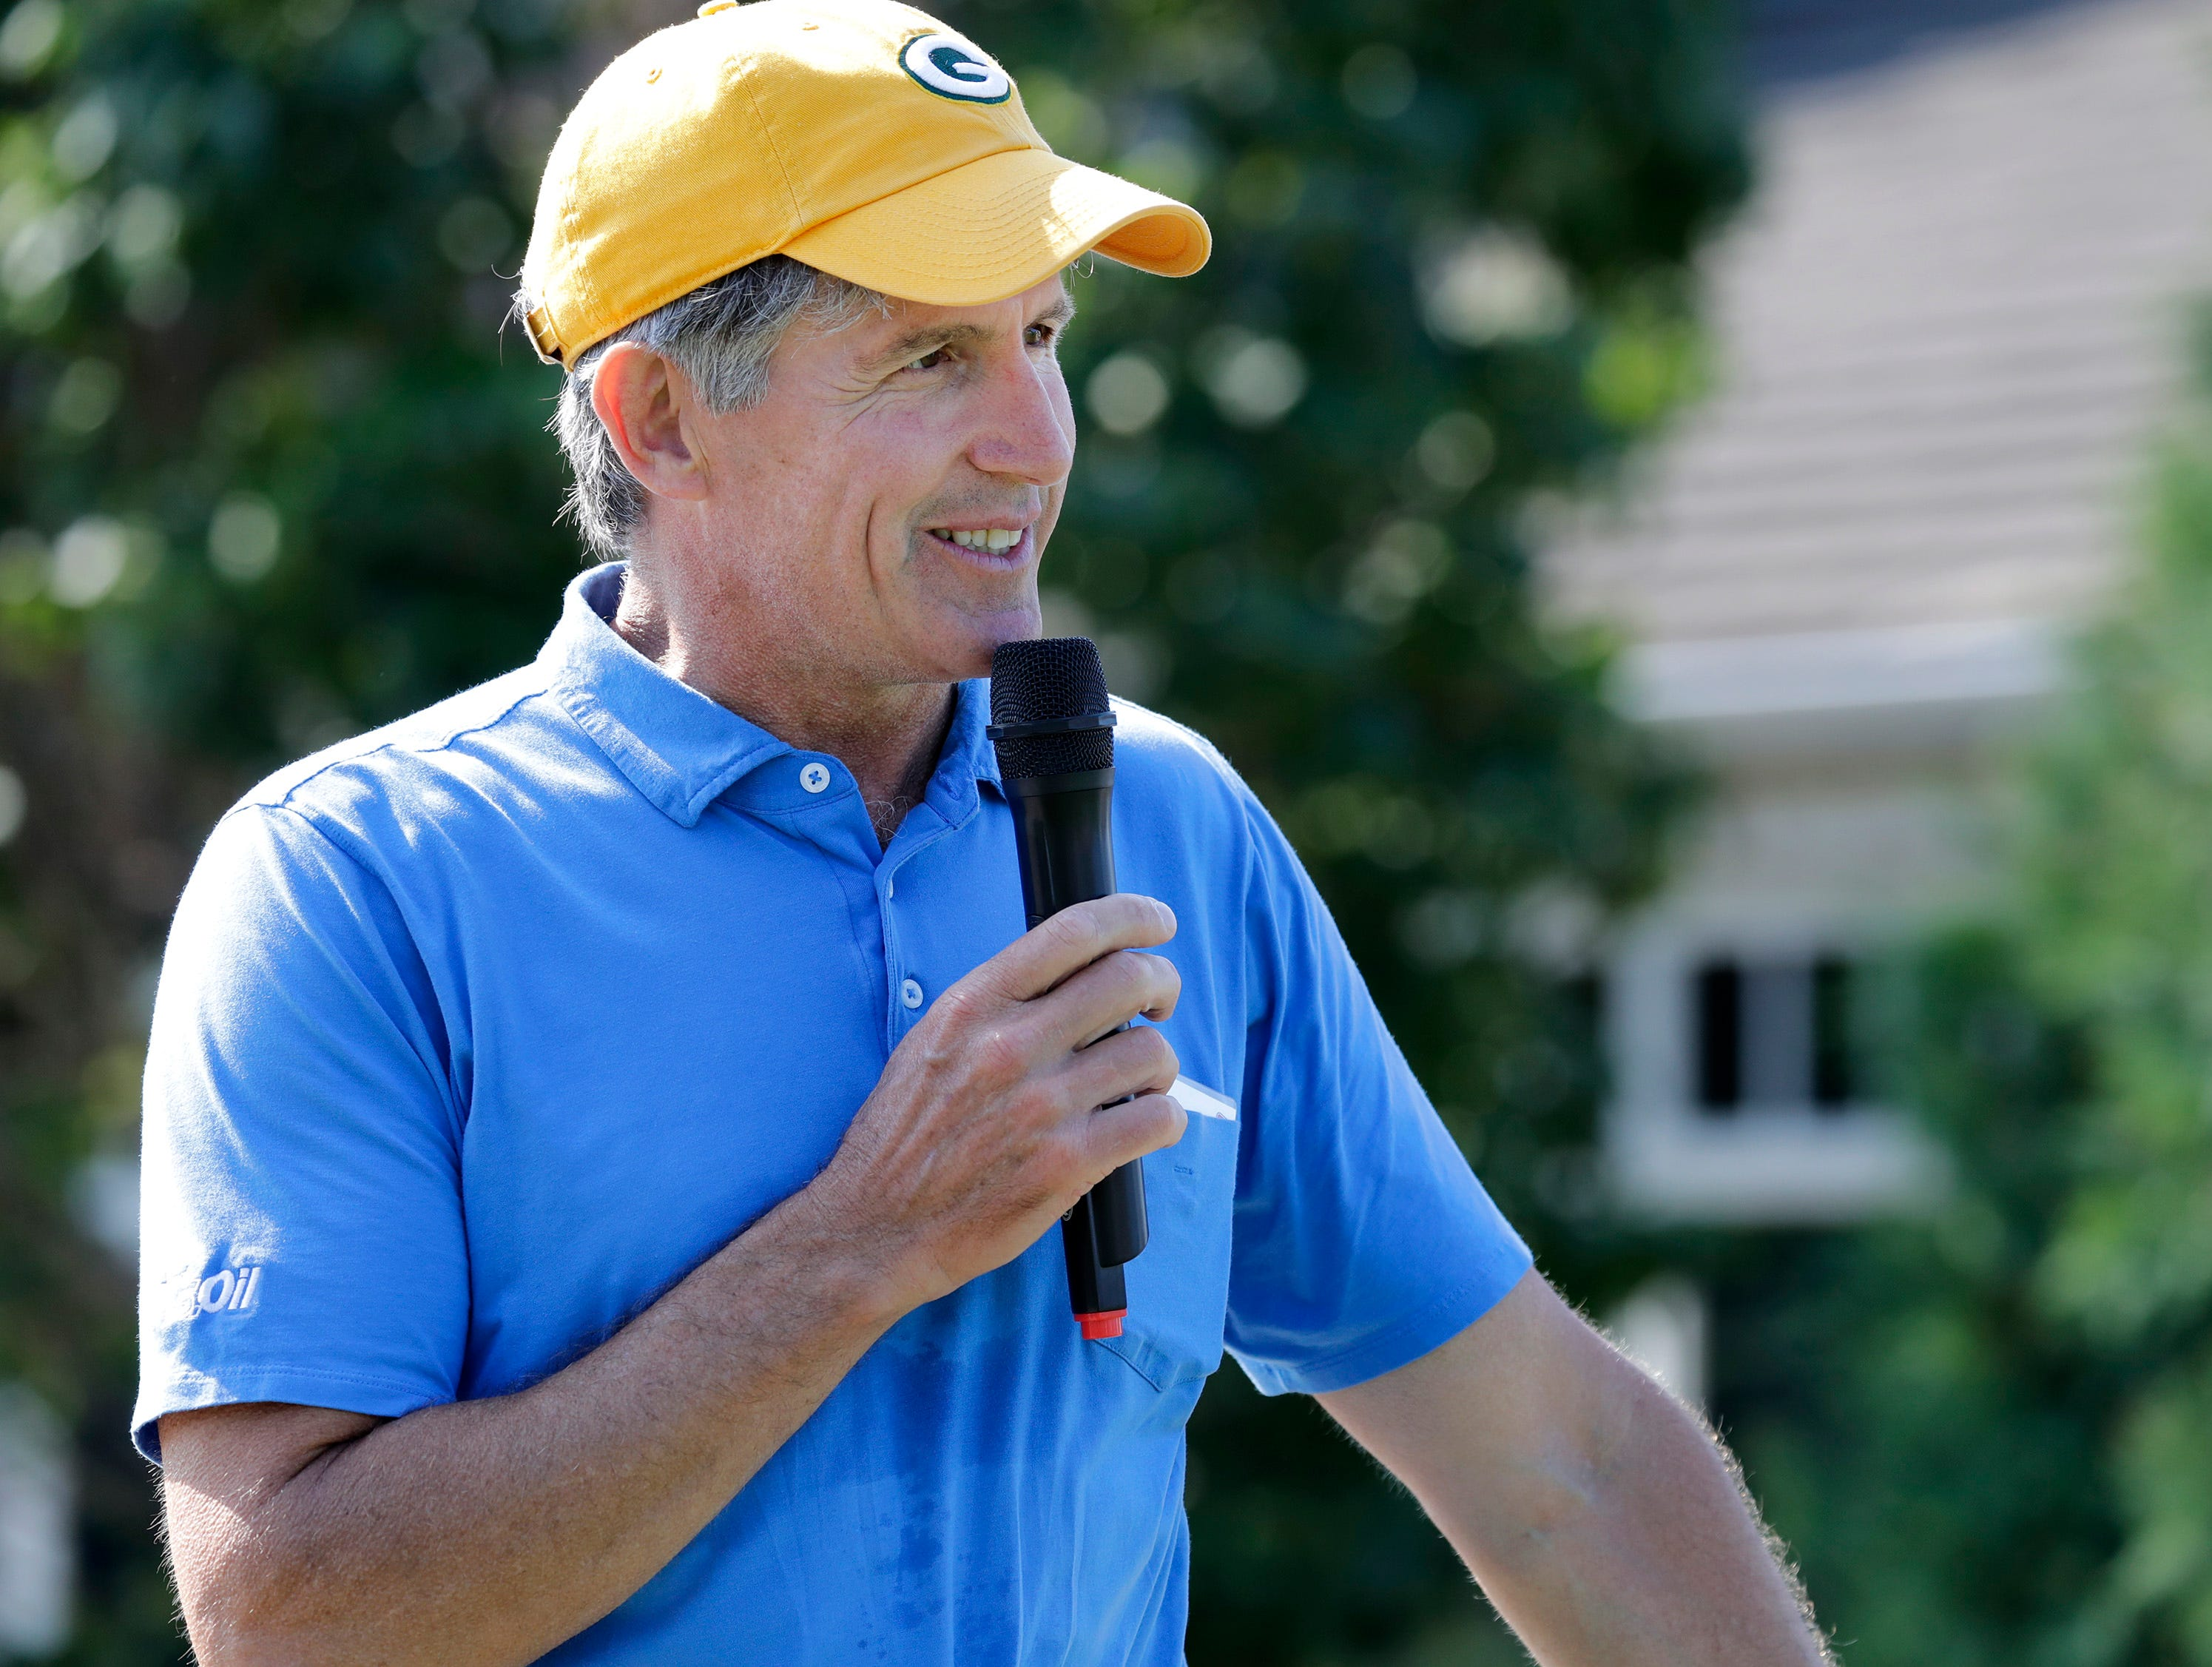 John Schmidt, president and CEO of U.S. Venture speaks before the start of the U.S. Venture Open Wednesday, Aug. 8, 2018, at North Shore Golf Club in Menasha, Wis.